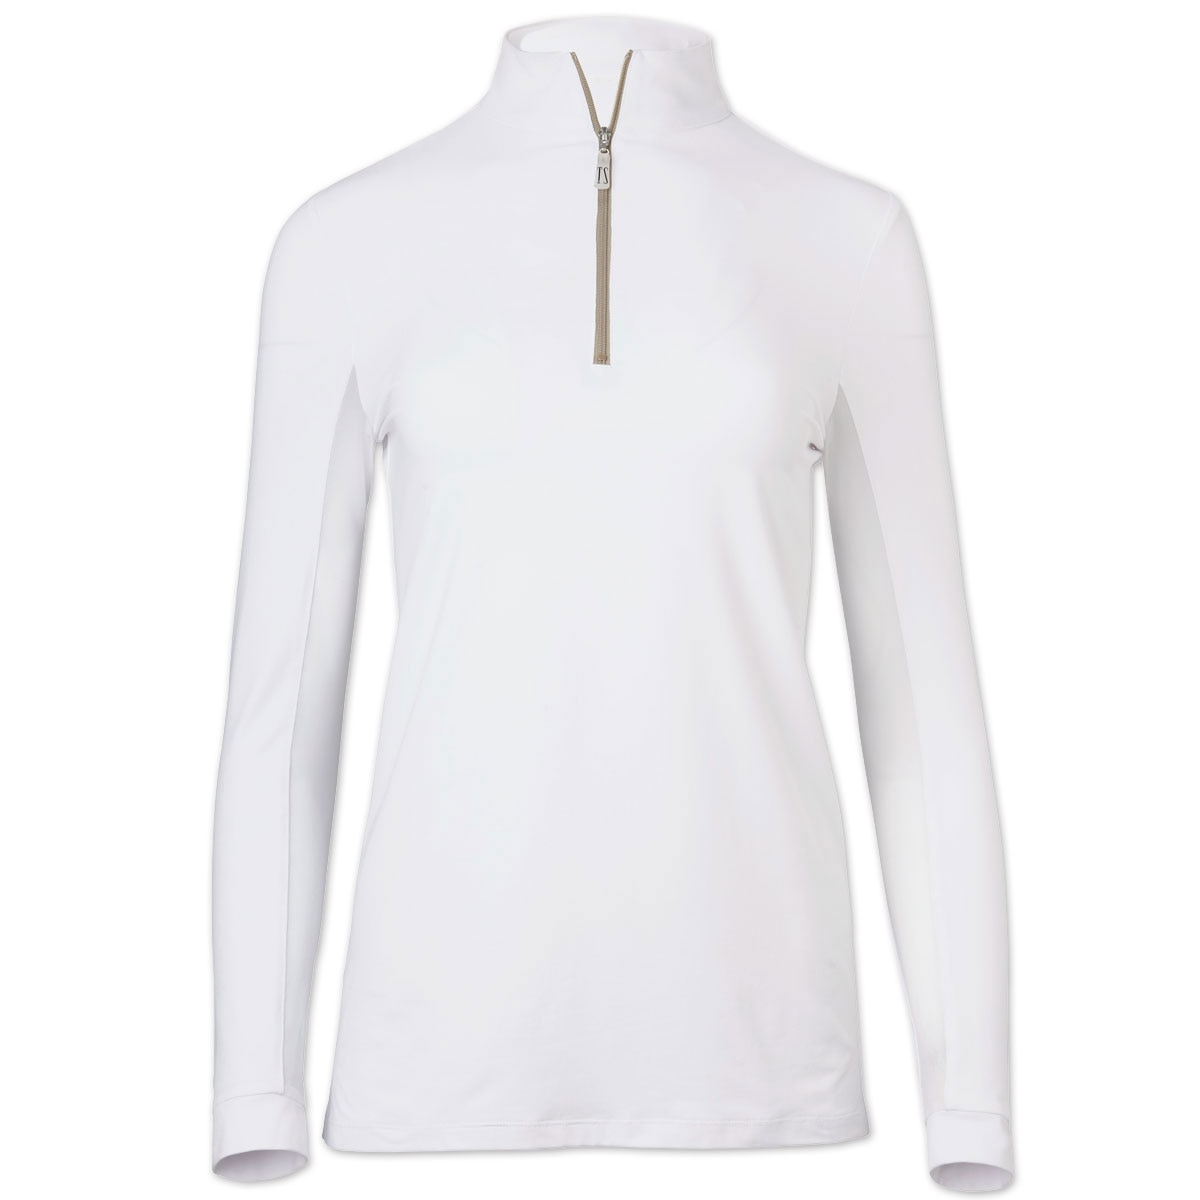 The Tailored Sportsman Ice Fil Shirt